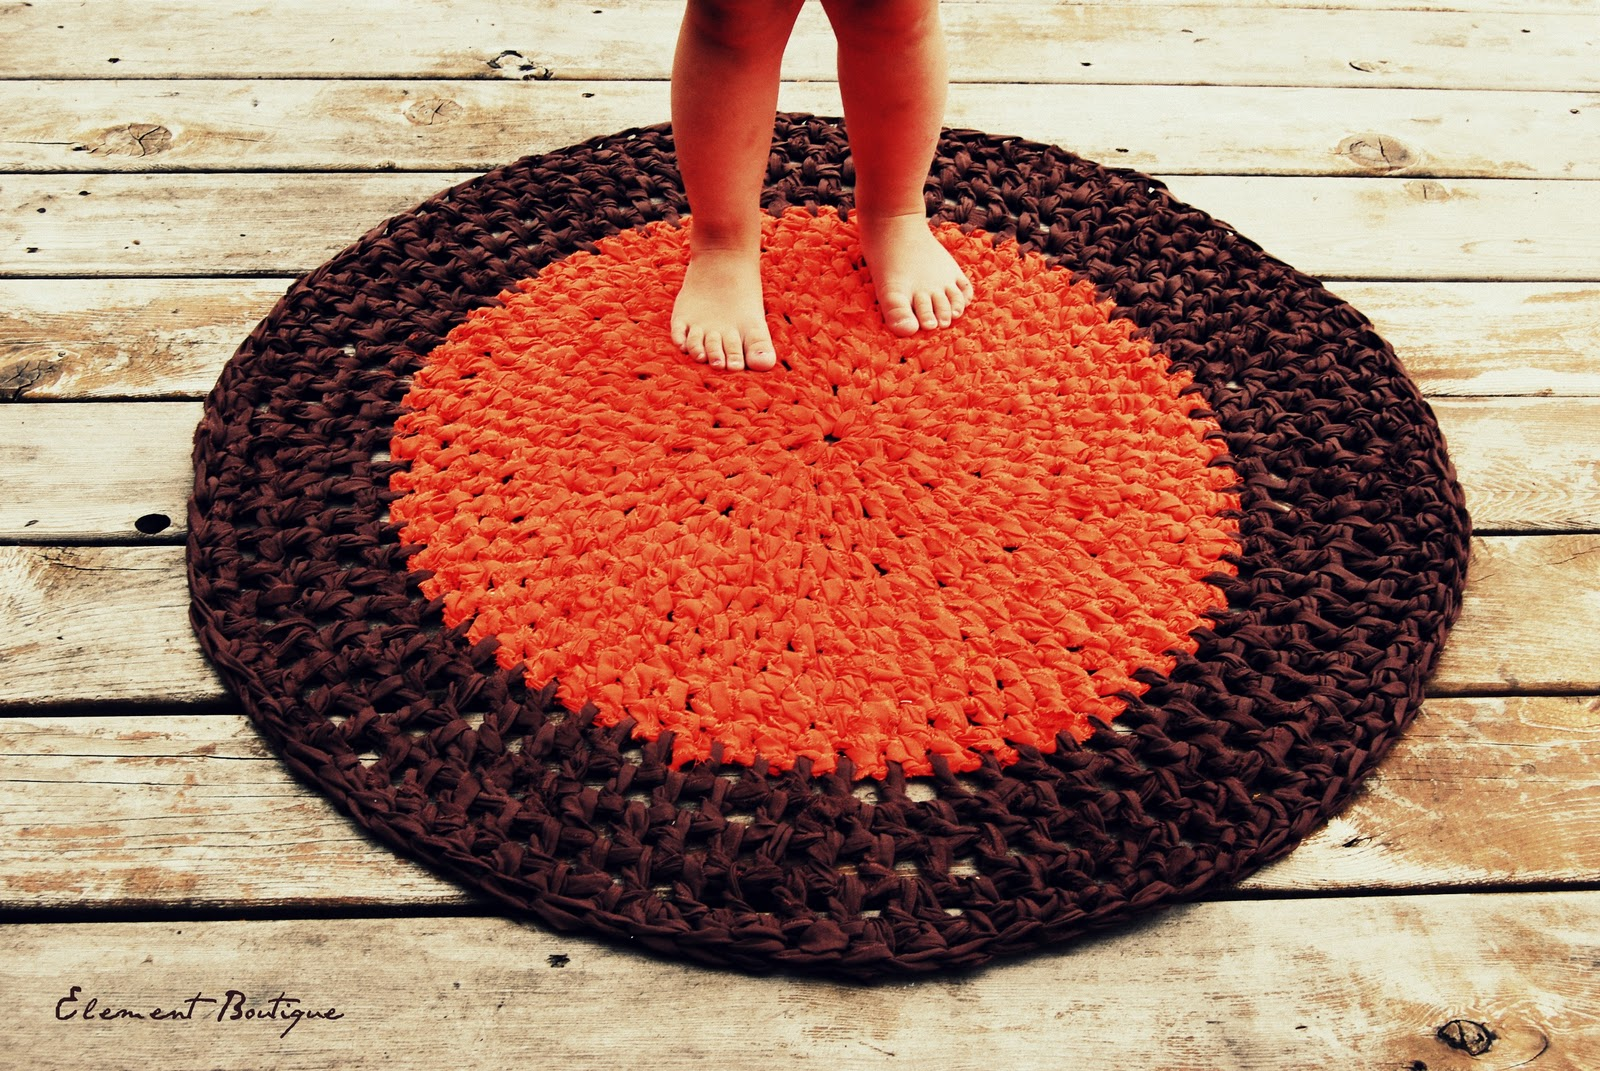 Crocheting Round Rugs : Element Boutique: Upcycled Crochet Round Rug